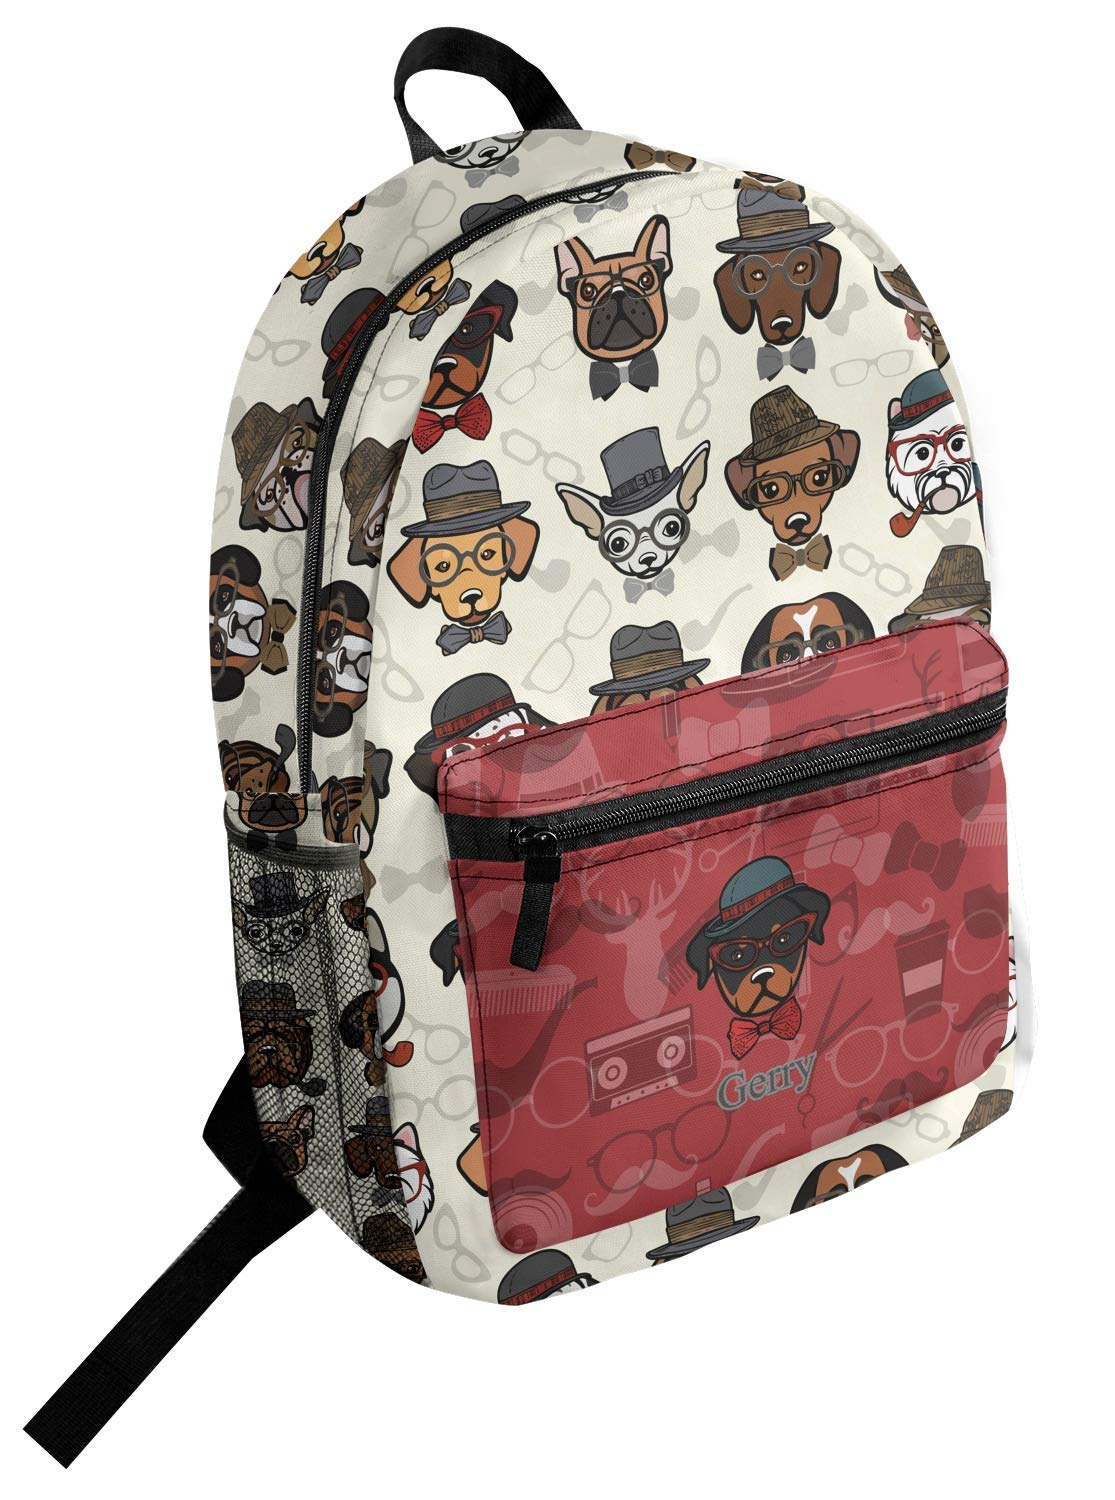 Hipster Dogs Student Backpack Personalized